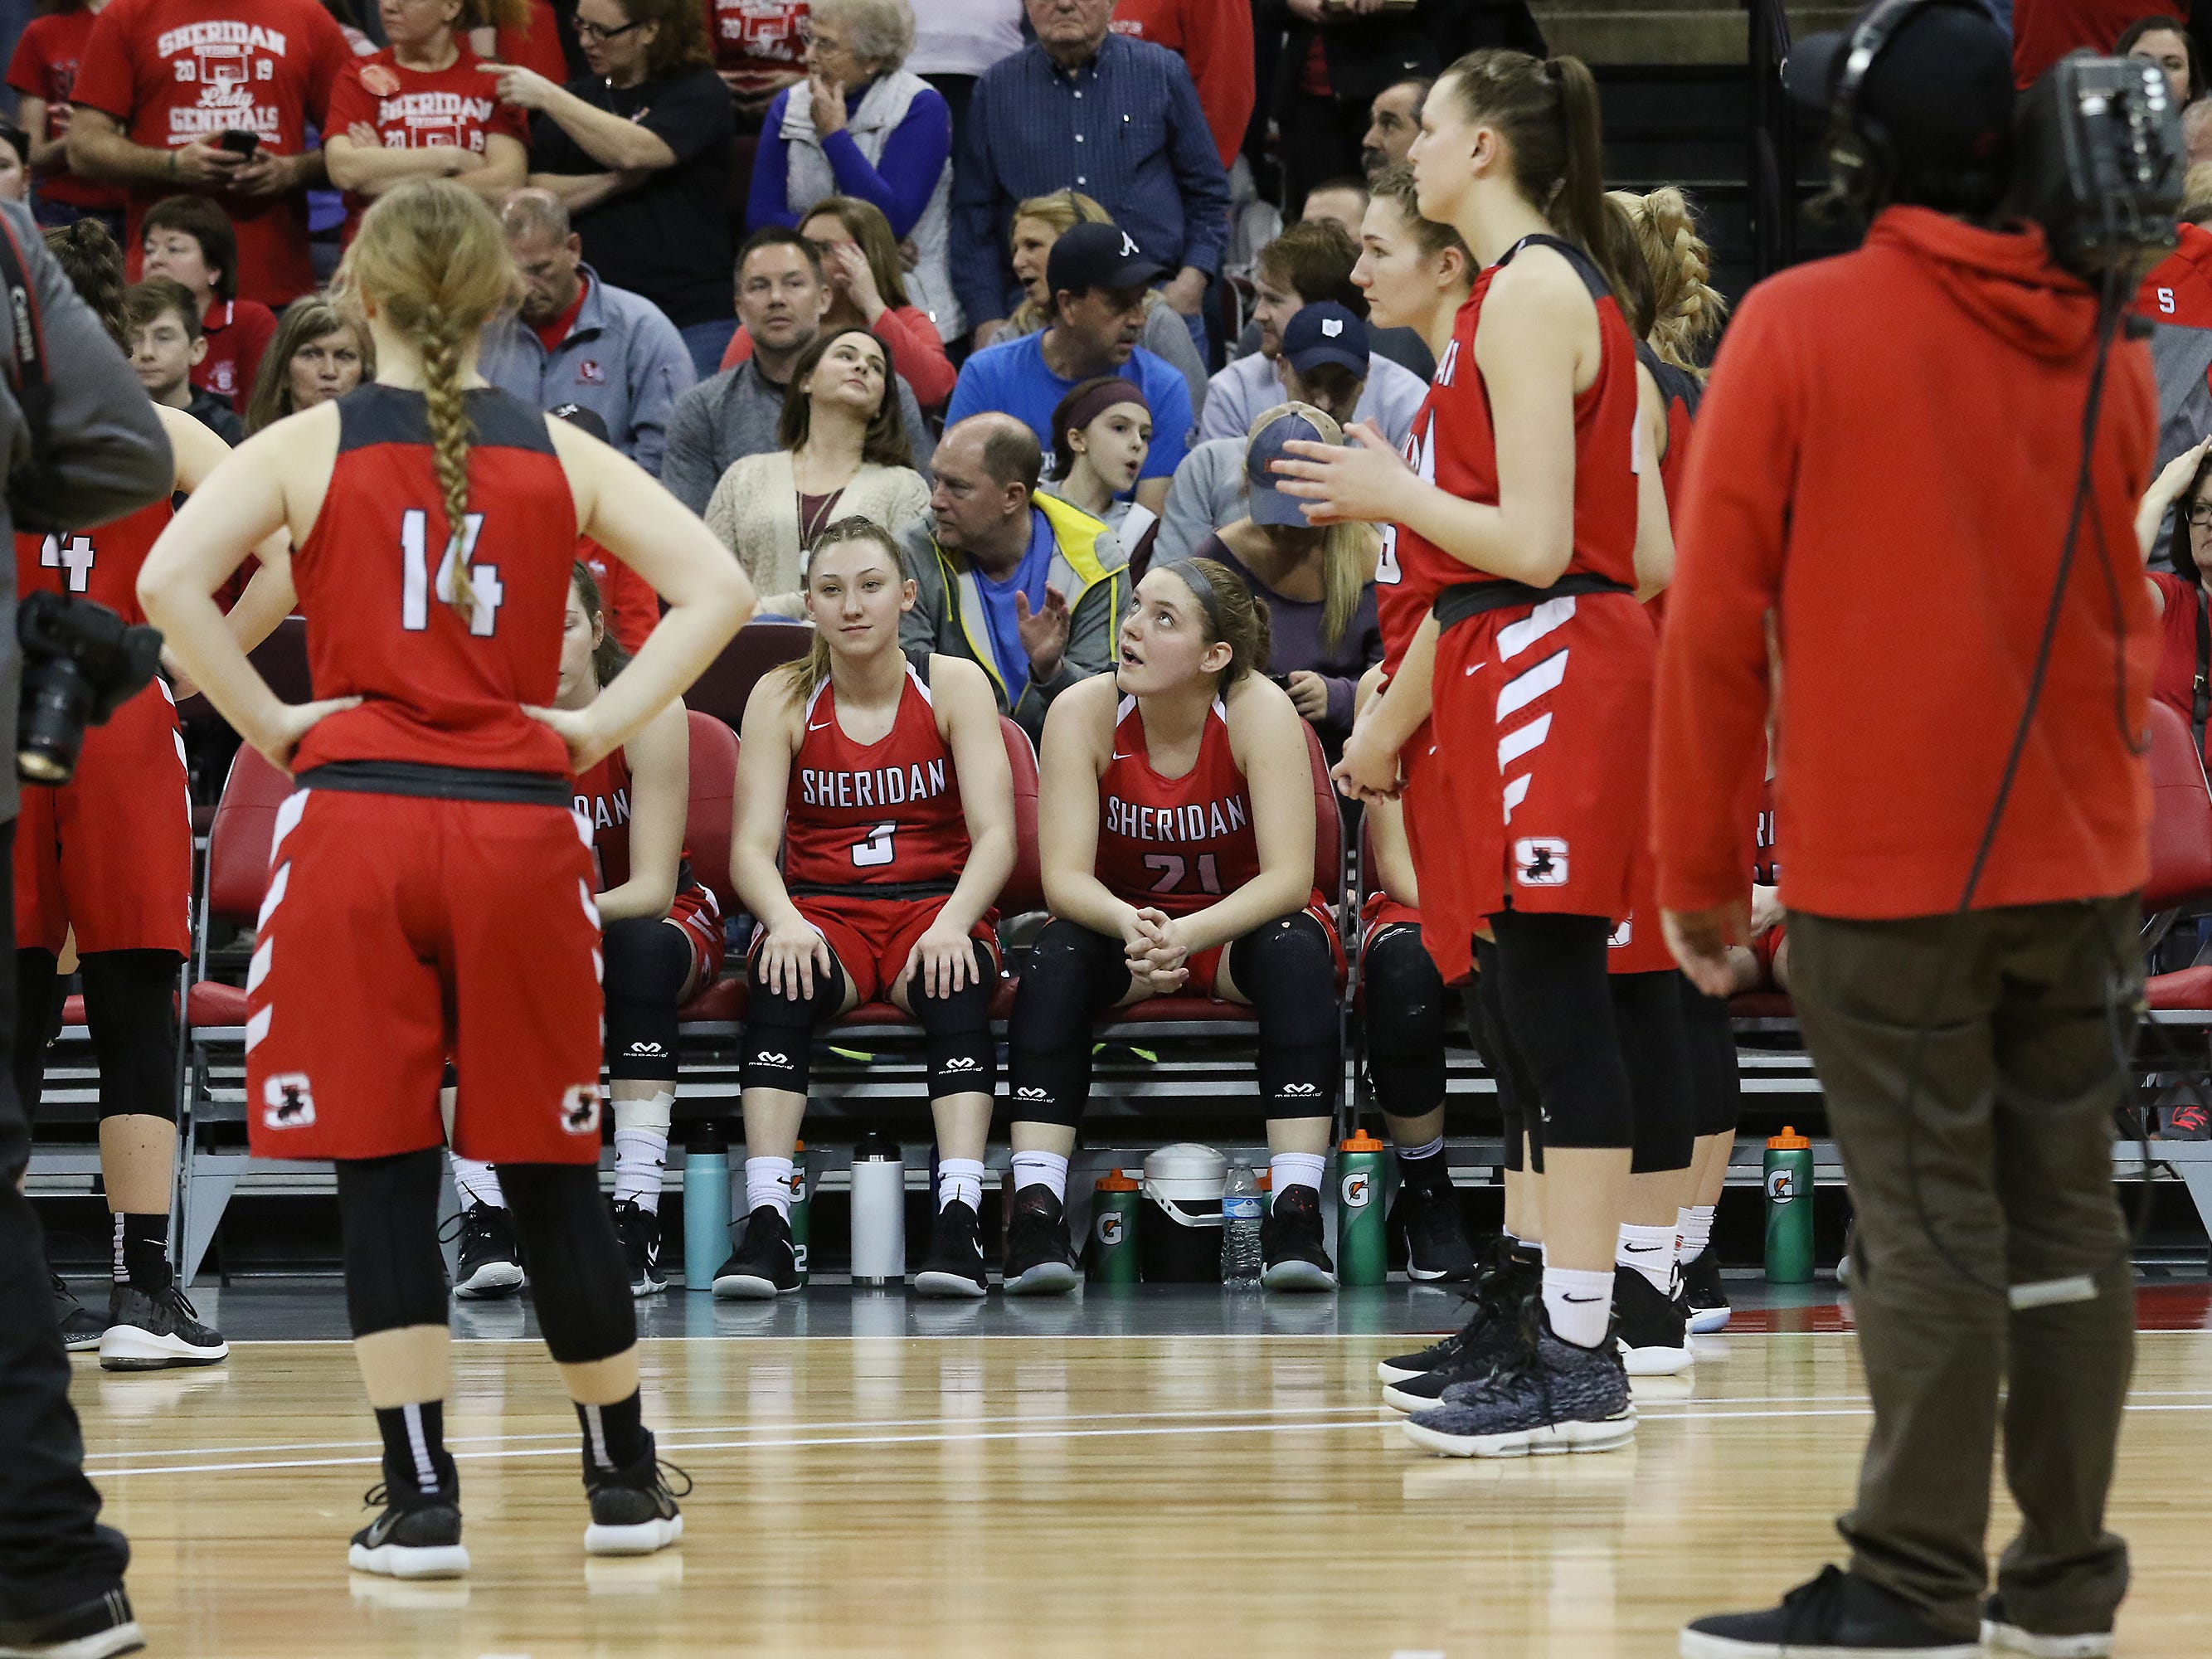 Sheridan waits to be introduced before the D2 state semis in Columbus.